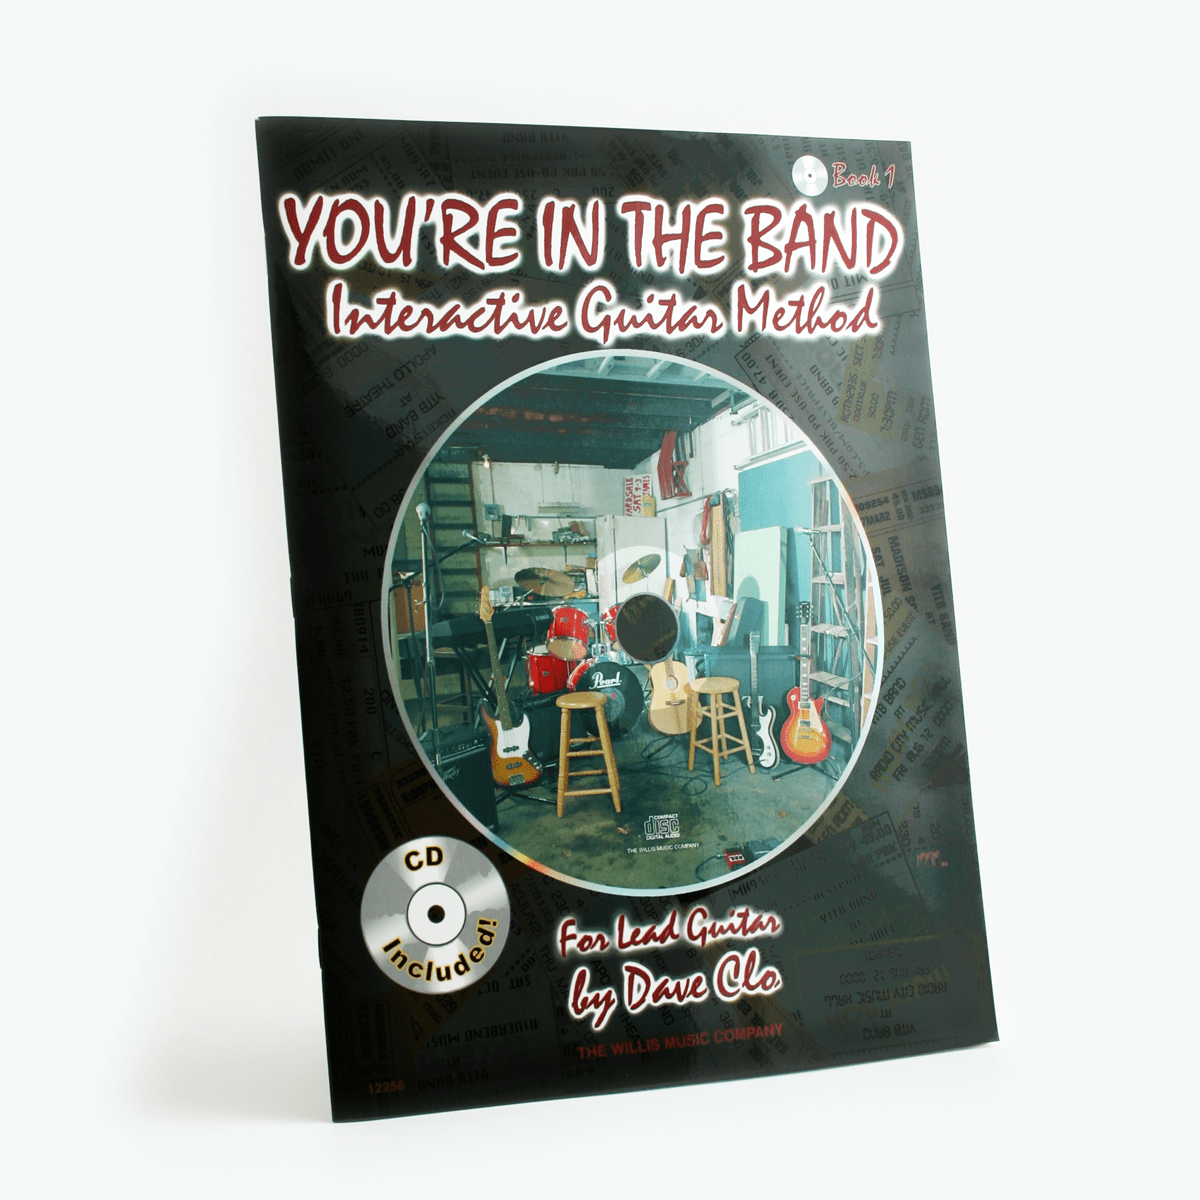 You're in the Band, vol. 1